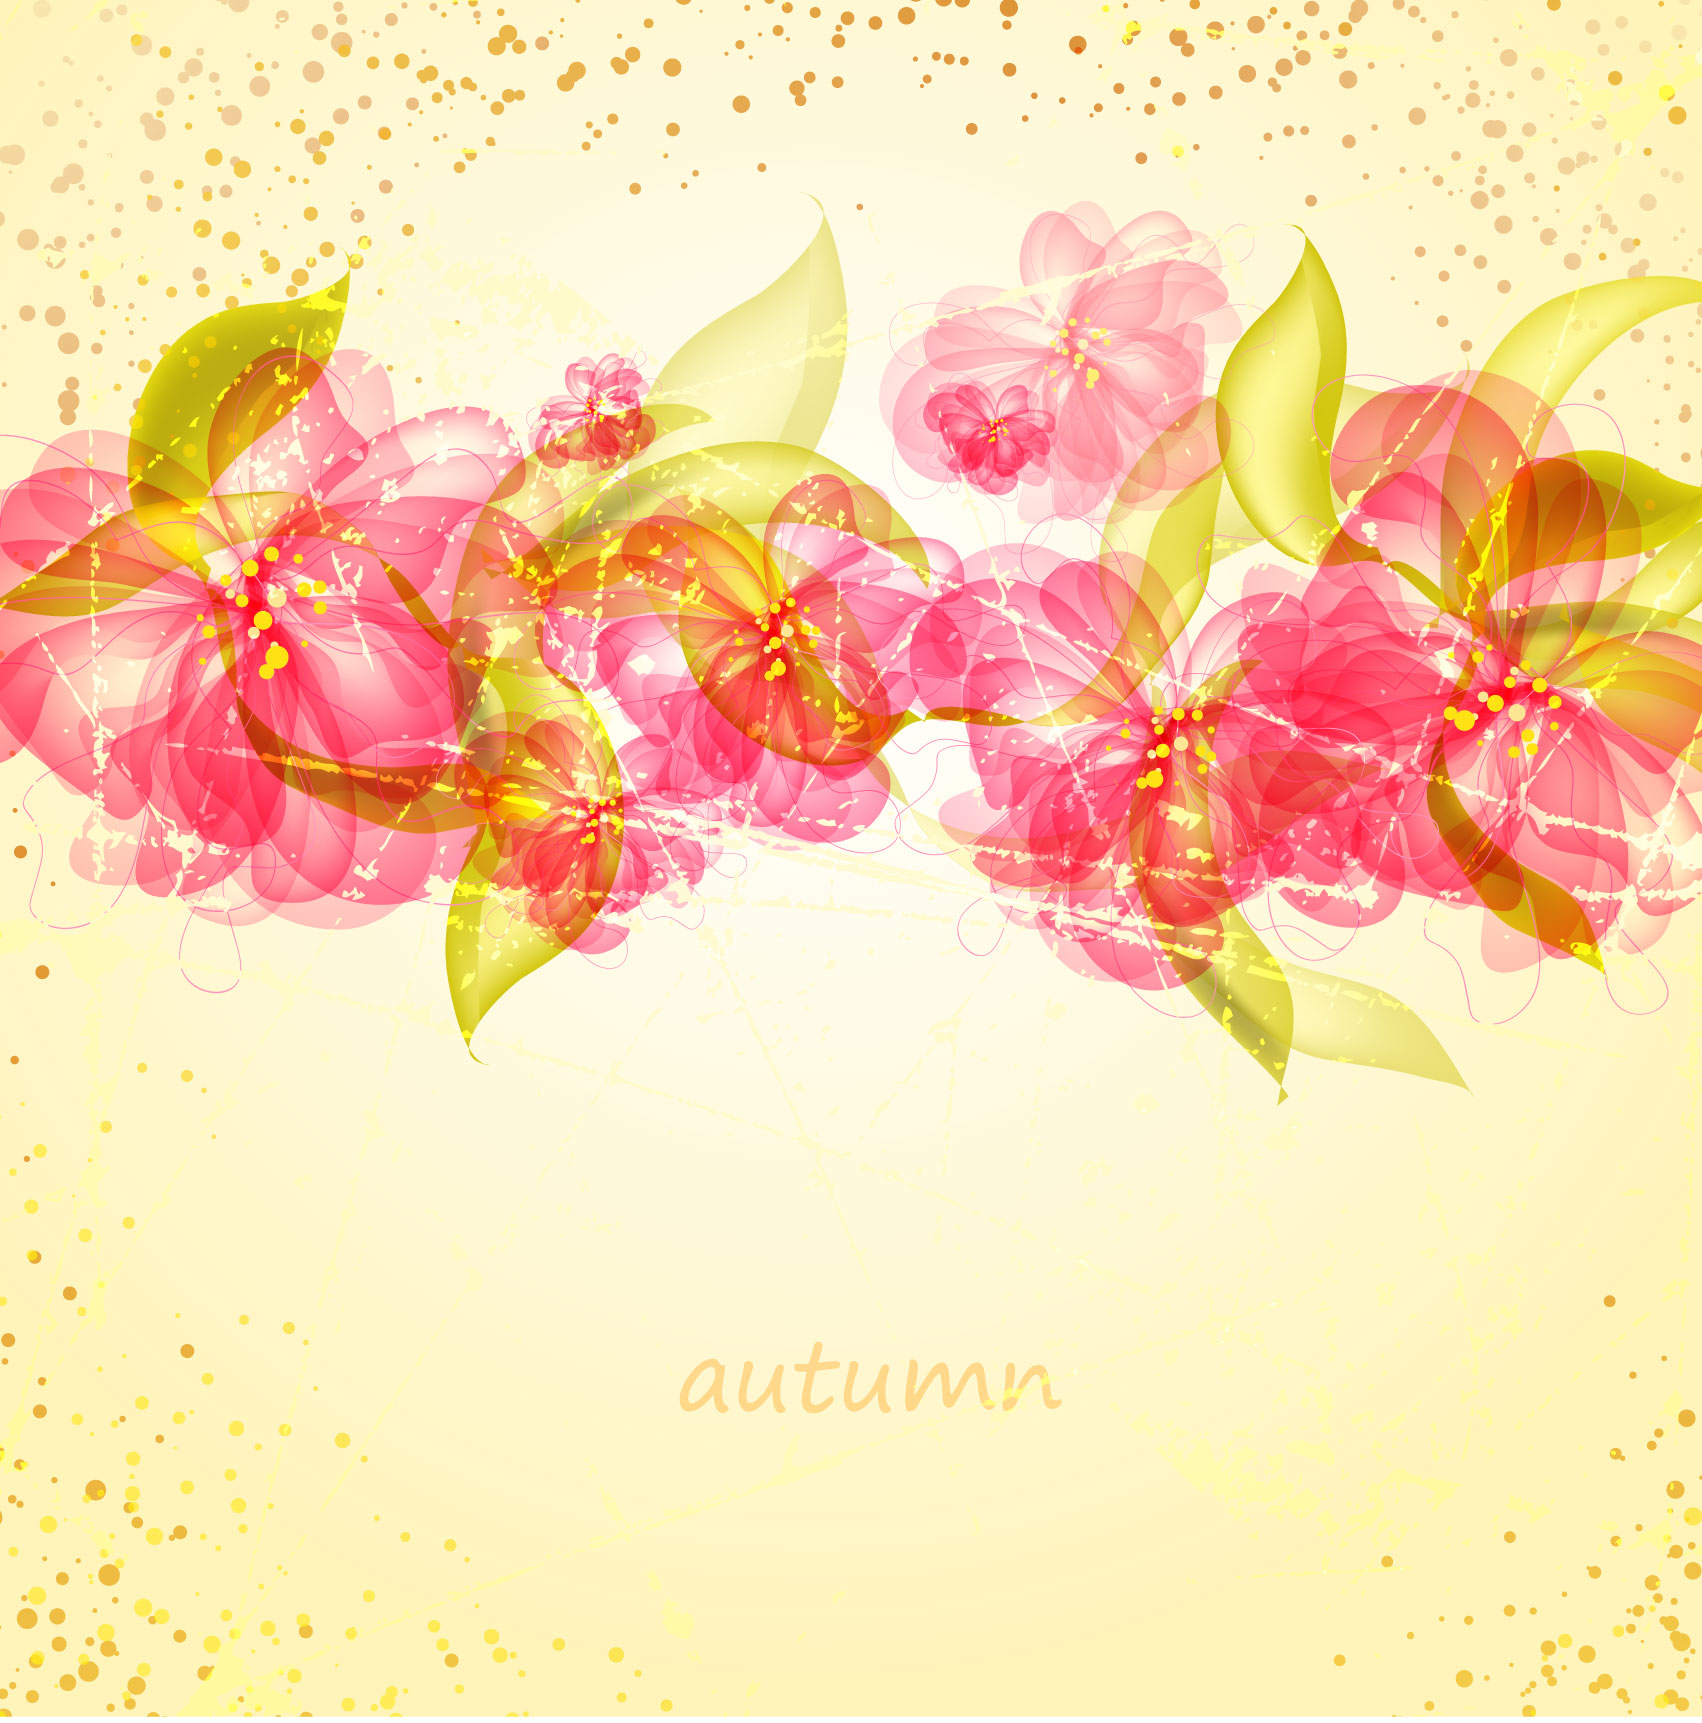 Free pictures of colorful flowers banner freeuse stock Colorful flowers background 01 vector Free Vector / 4Vector banner freeuse stock